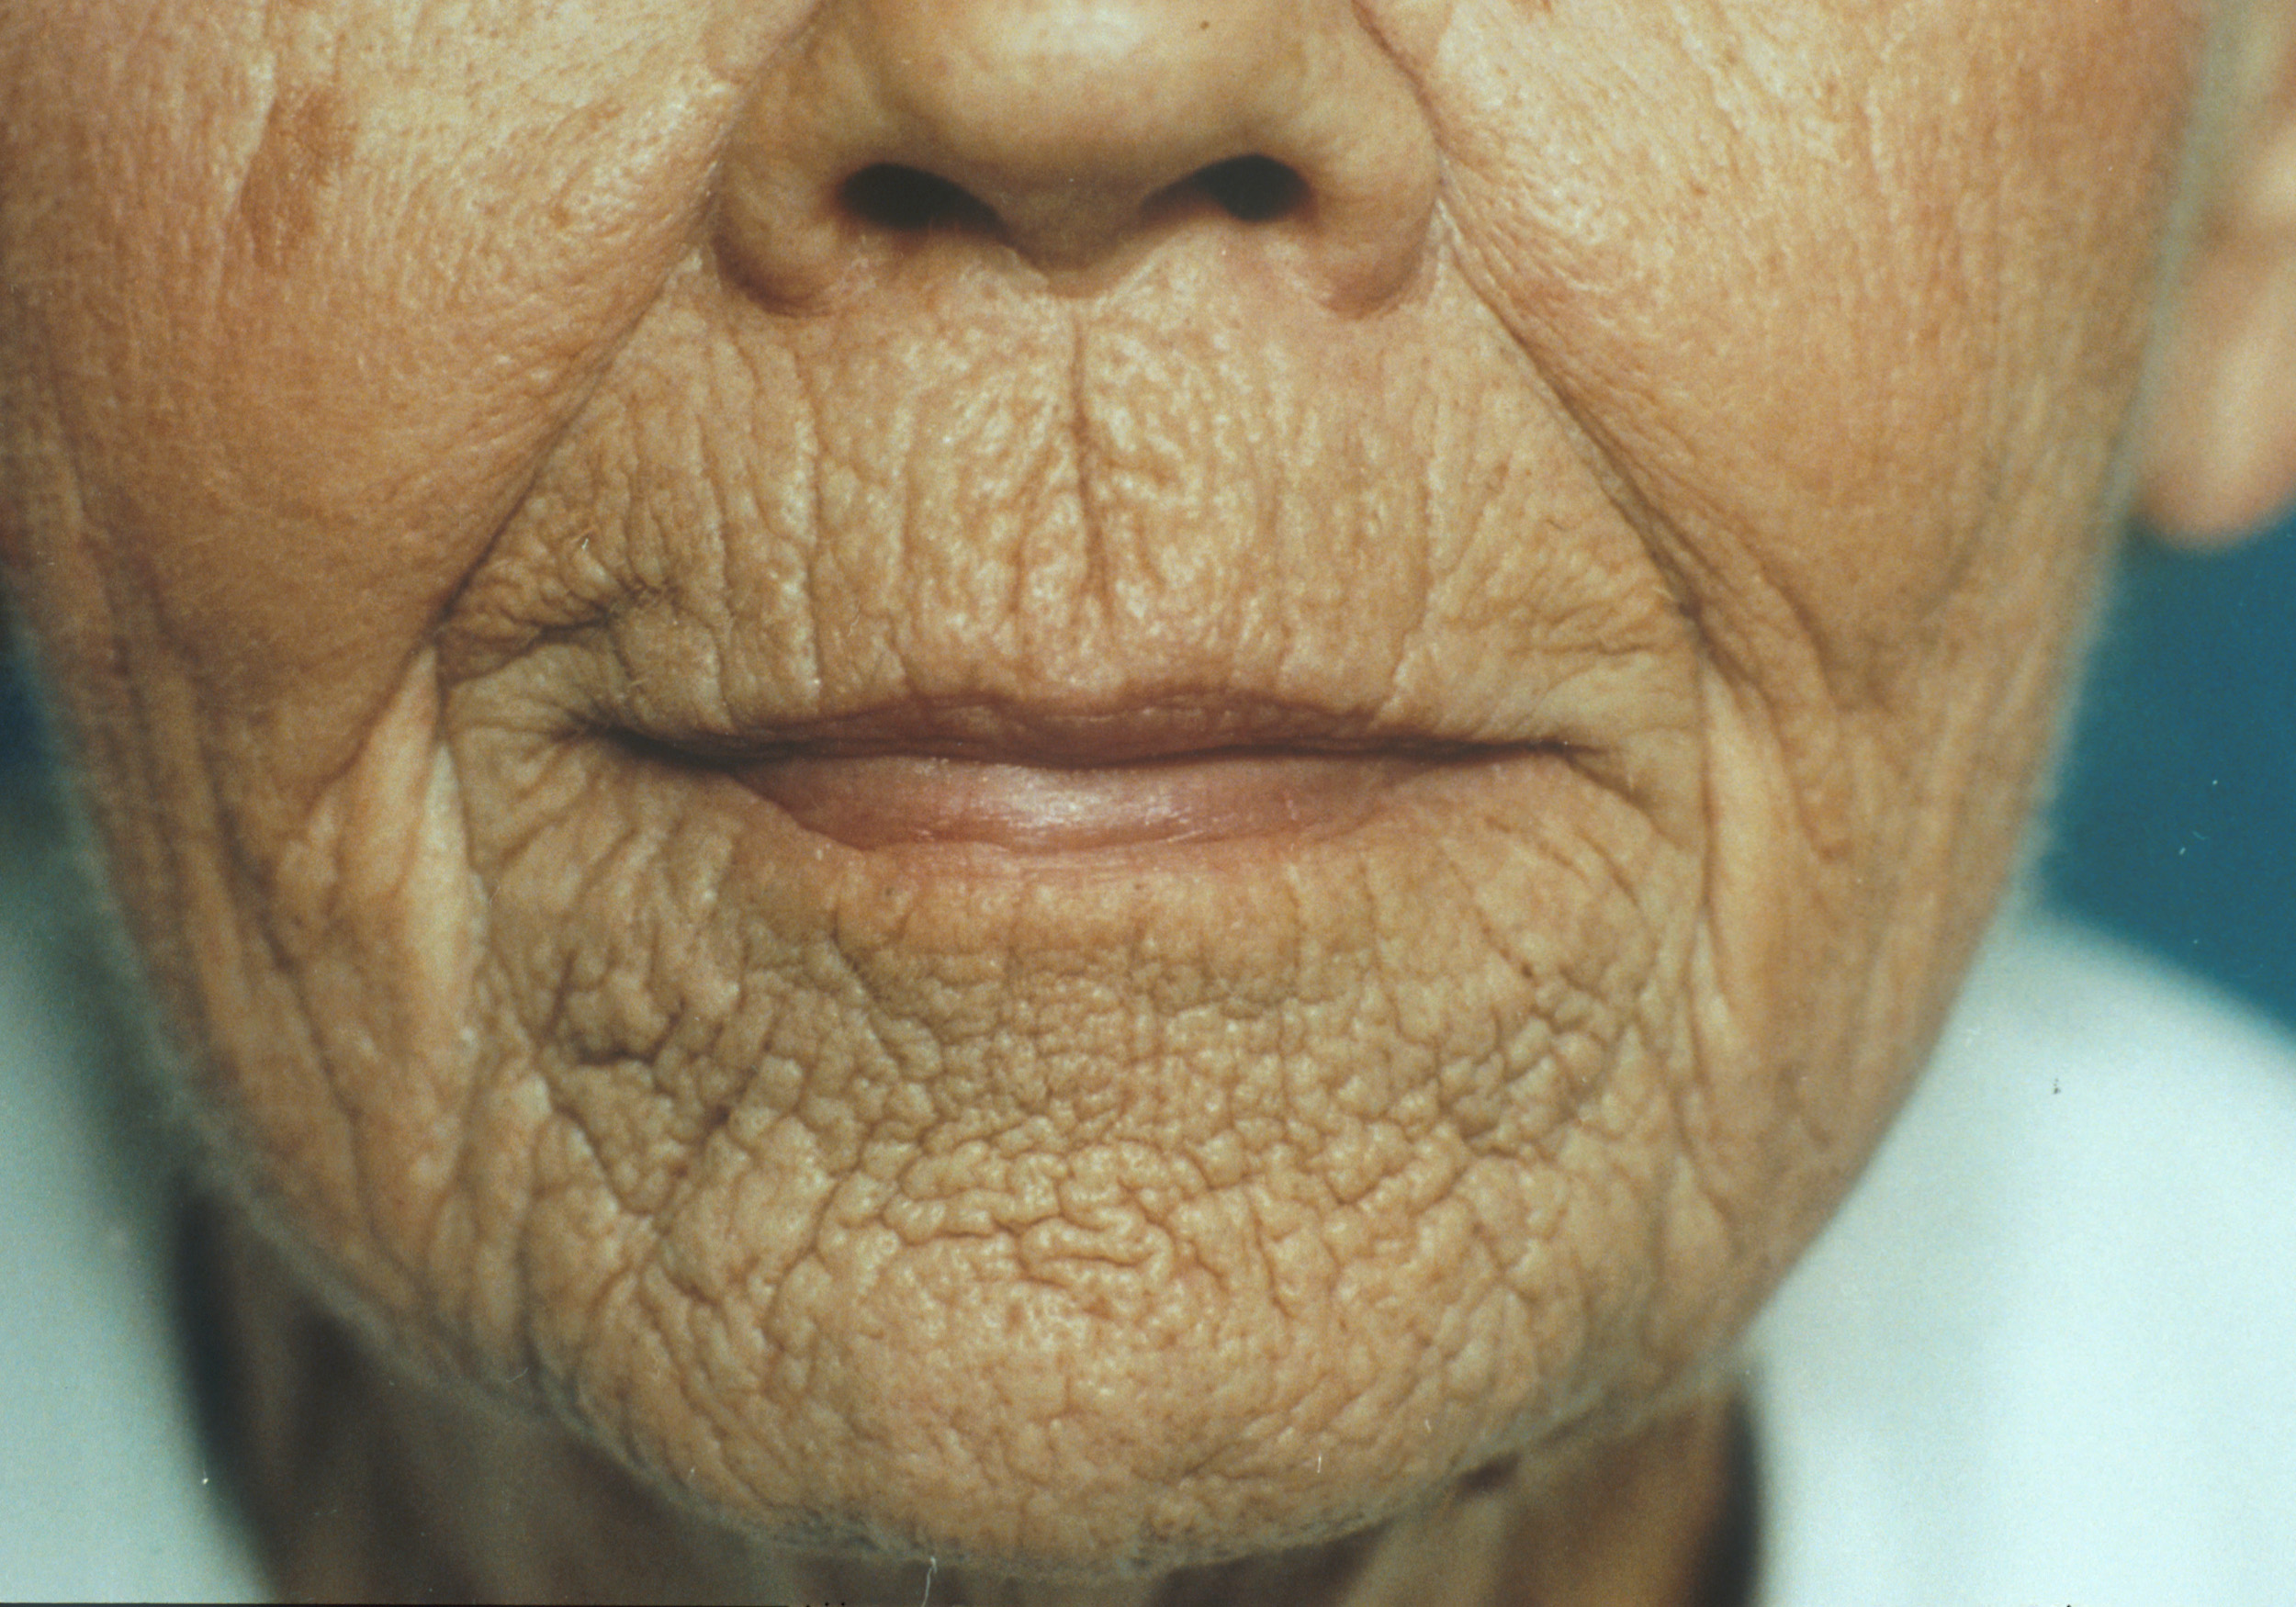 Wrinkles - Symptoms and causes - Mayo Clinic |Wrinkly Skin